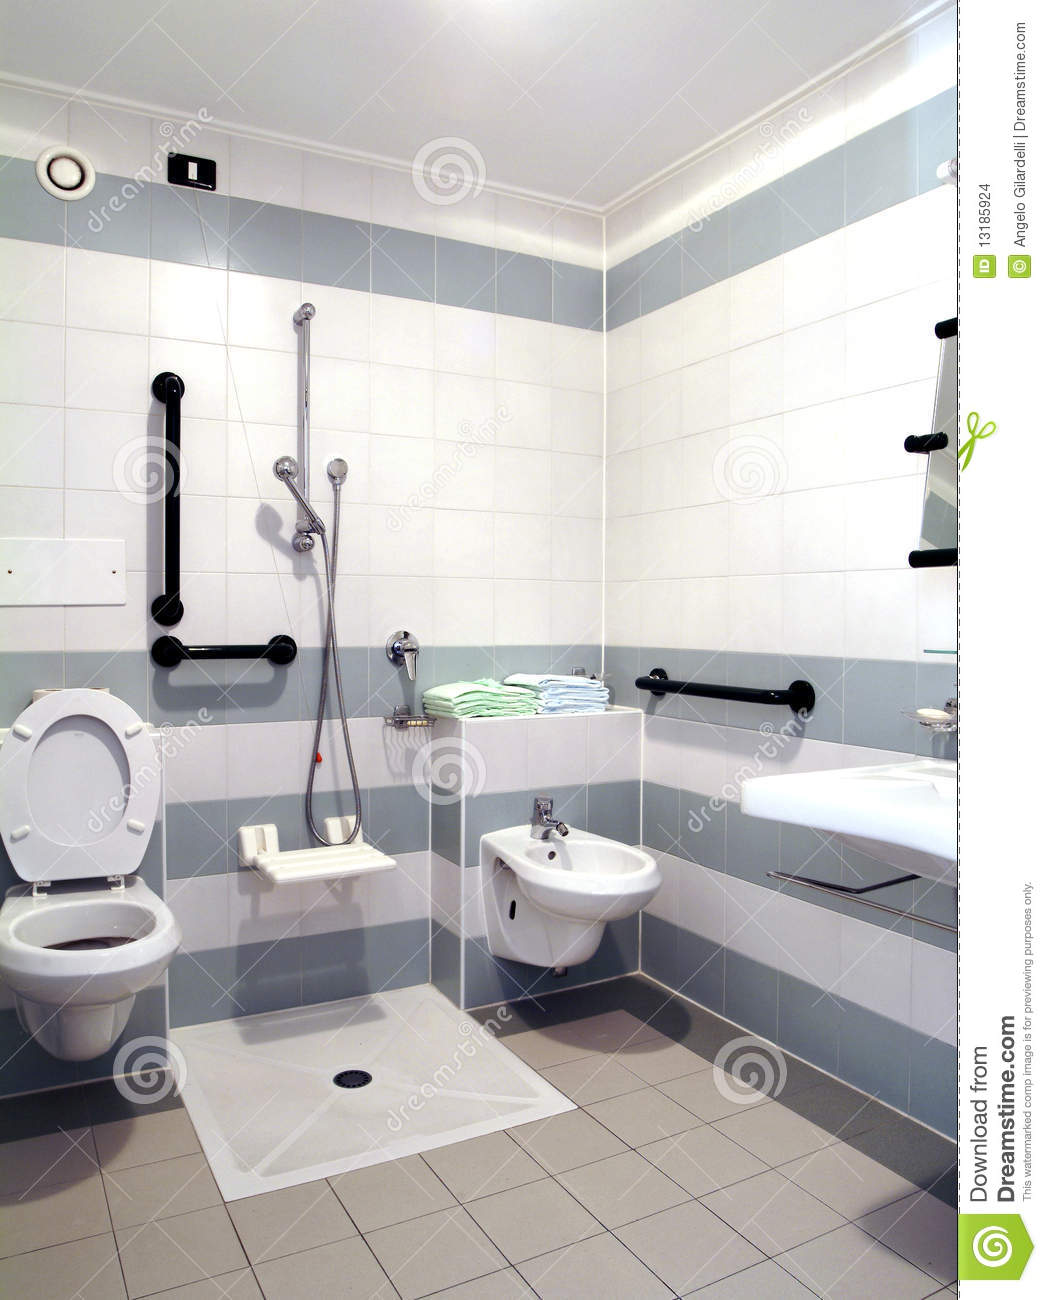 Barrier Free Bathroom Stock Images.